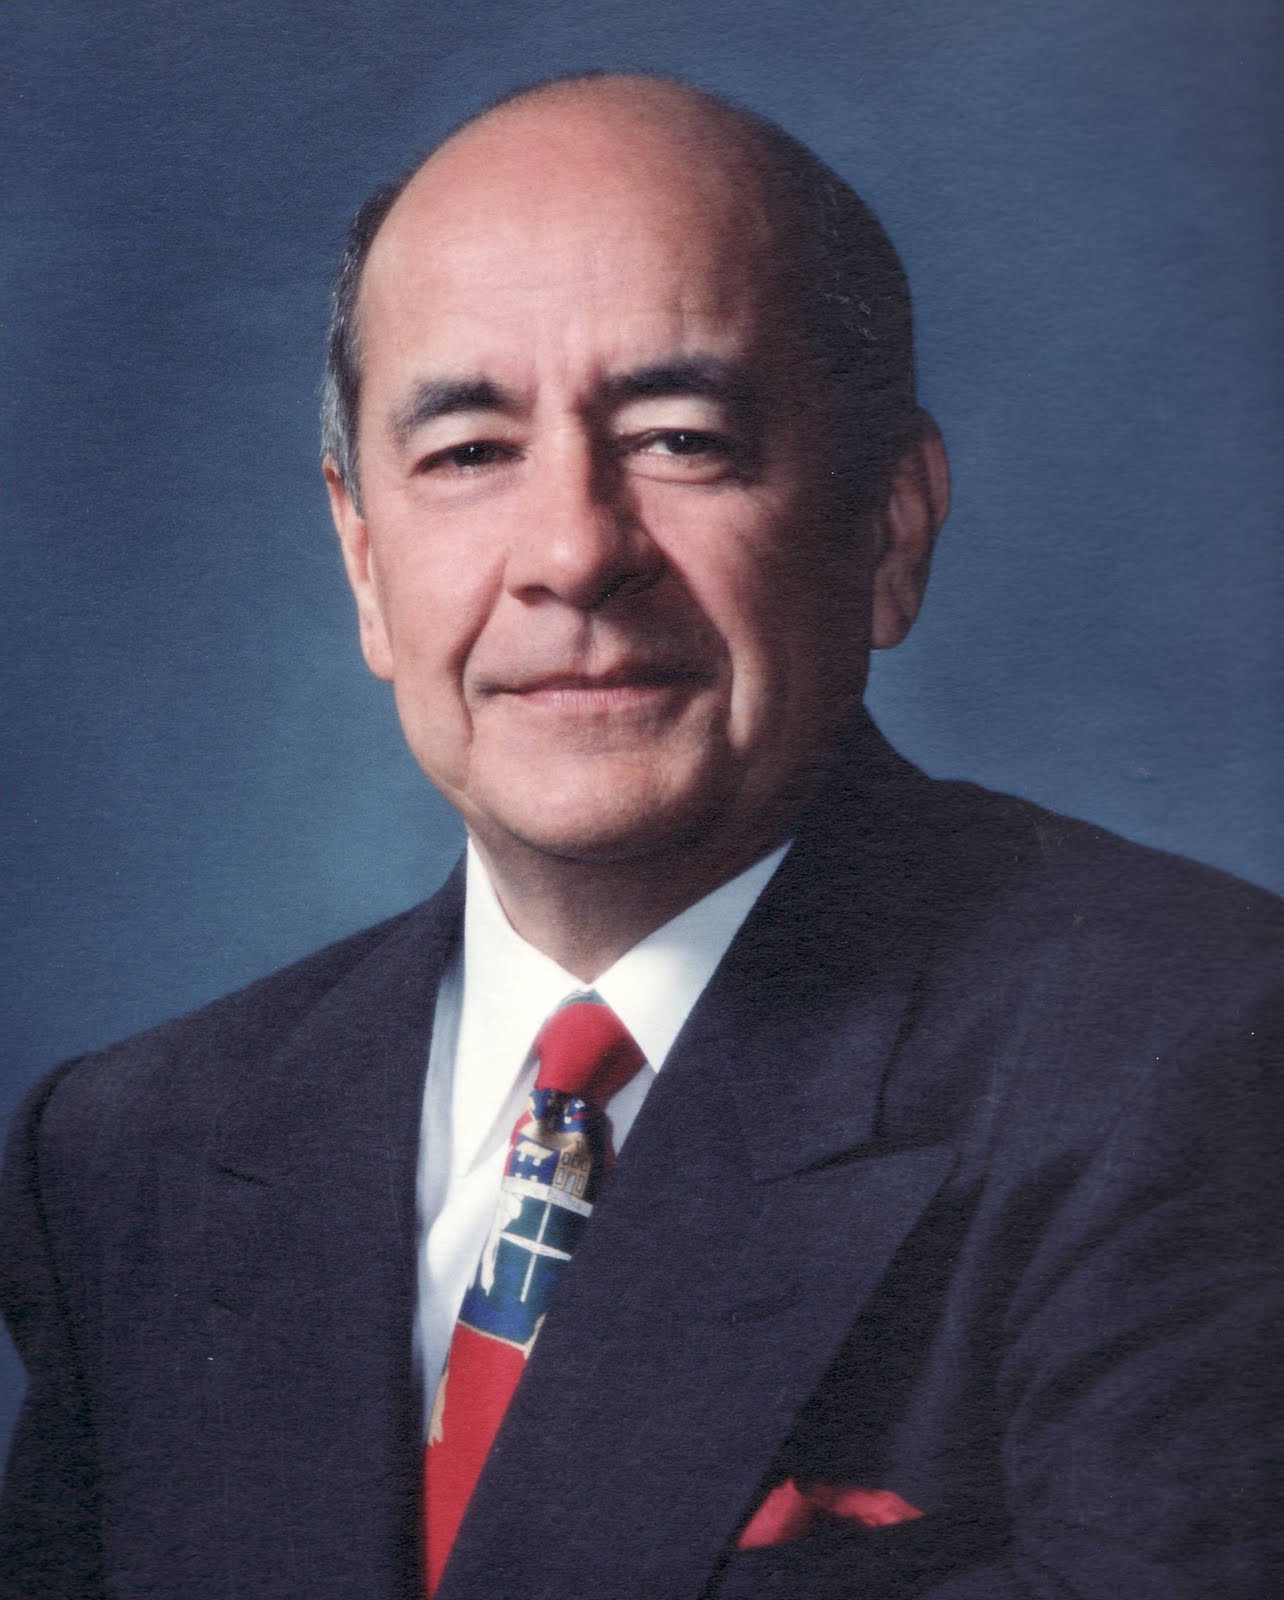 A professional head shot of Fernando Niebla in a suit in front of a blue background